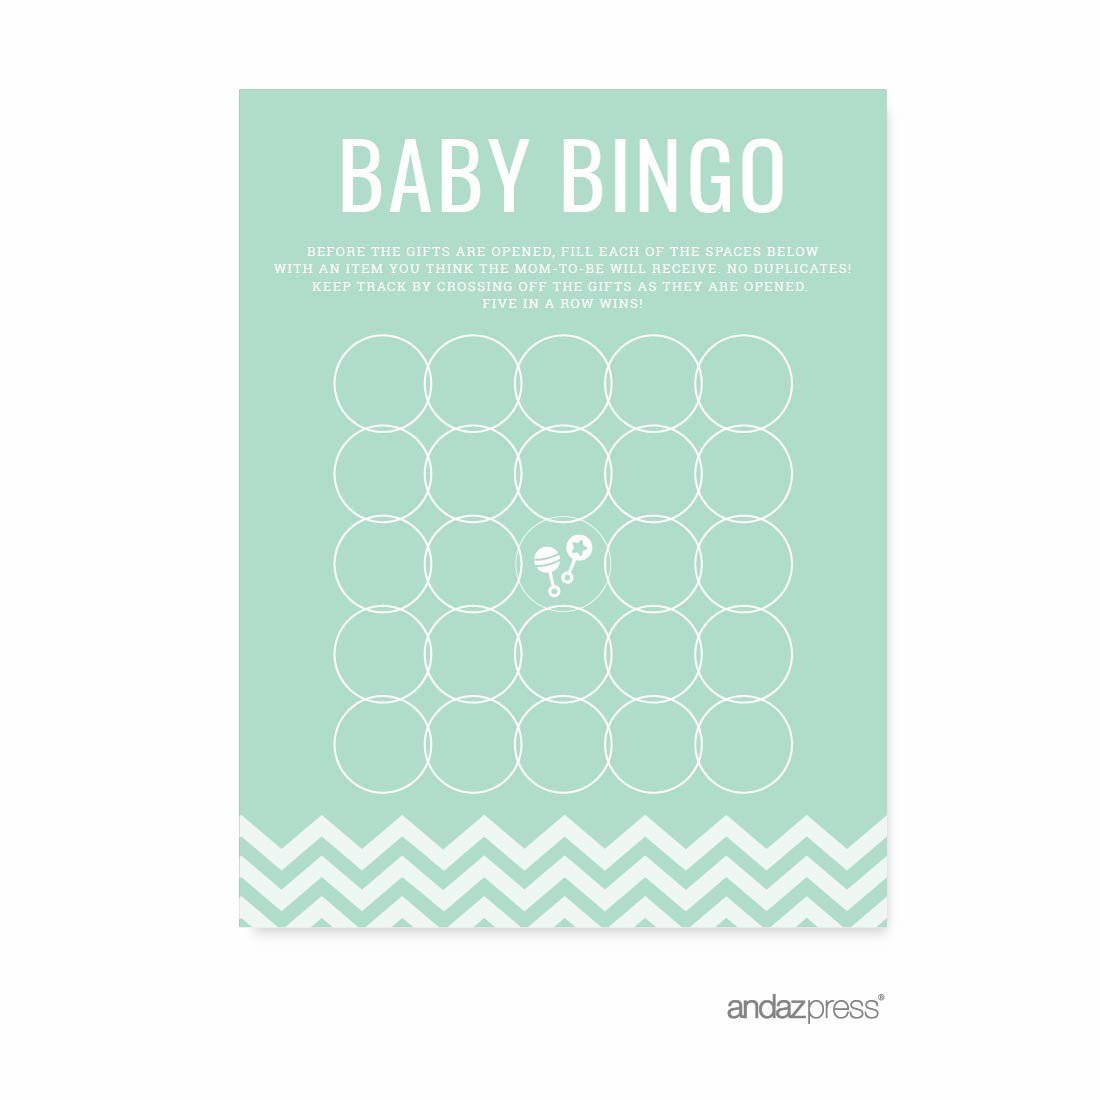 Andaz Press Mint Green Chevron Gender Neutral Baby Shower Collection, Games, Activities, Decorations, Baby Bingo Game Cards, 20-pack by Andaz Press